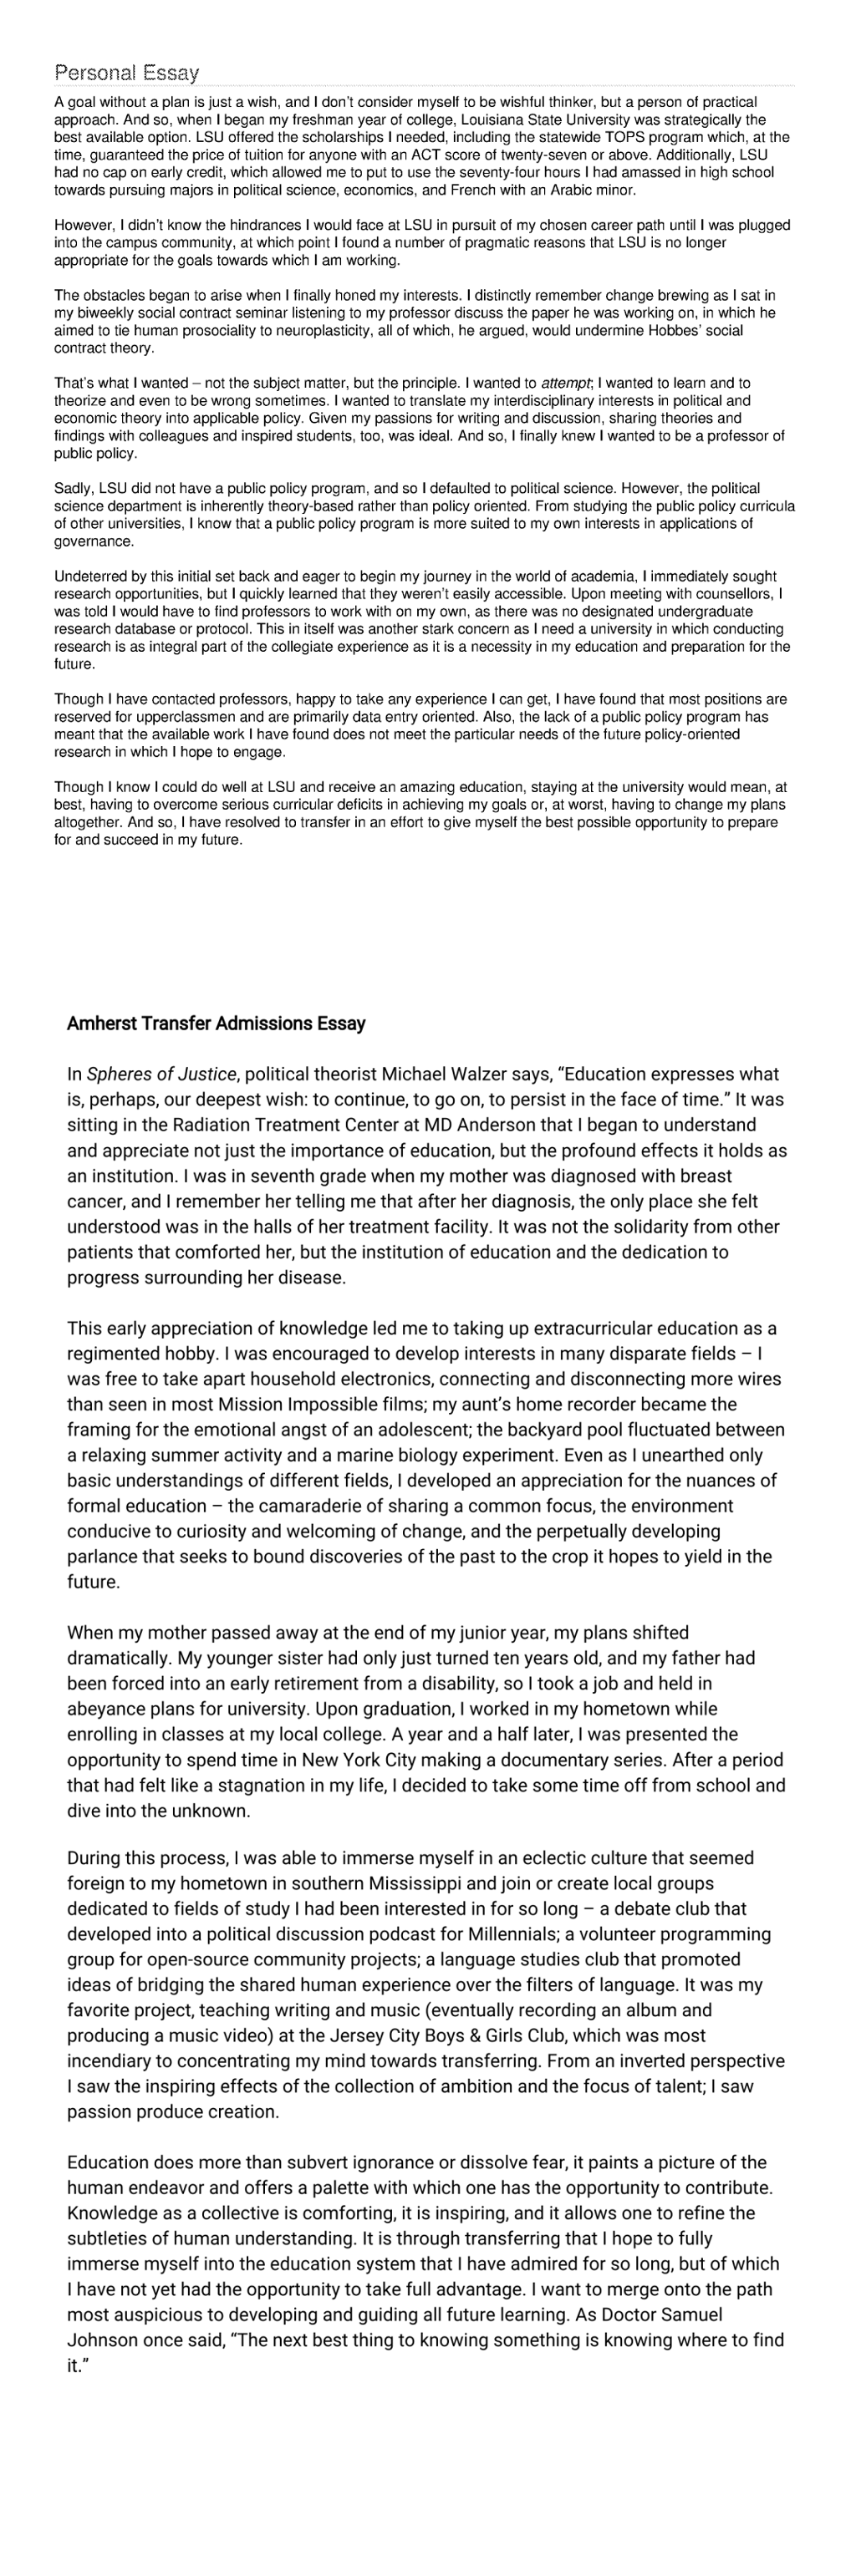 Transfer application essay georgetown